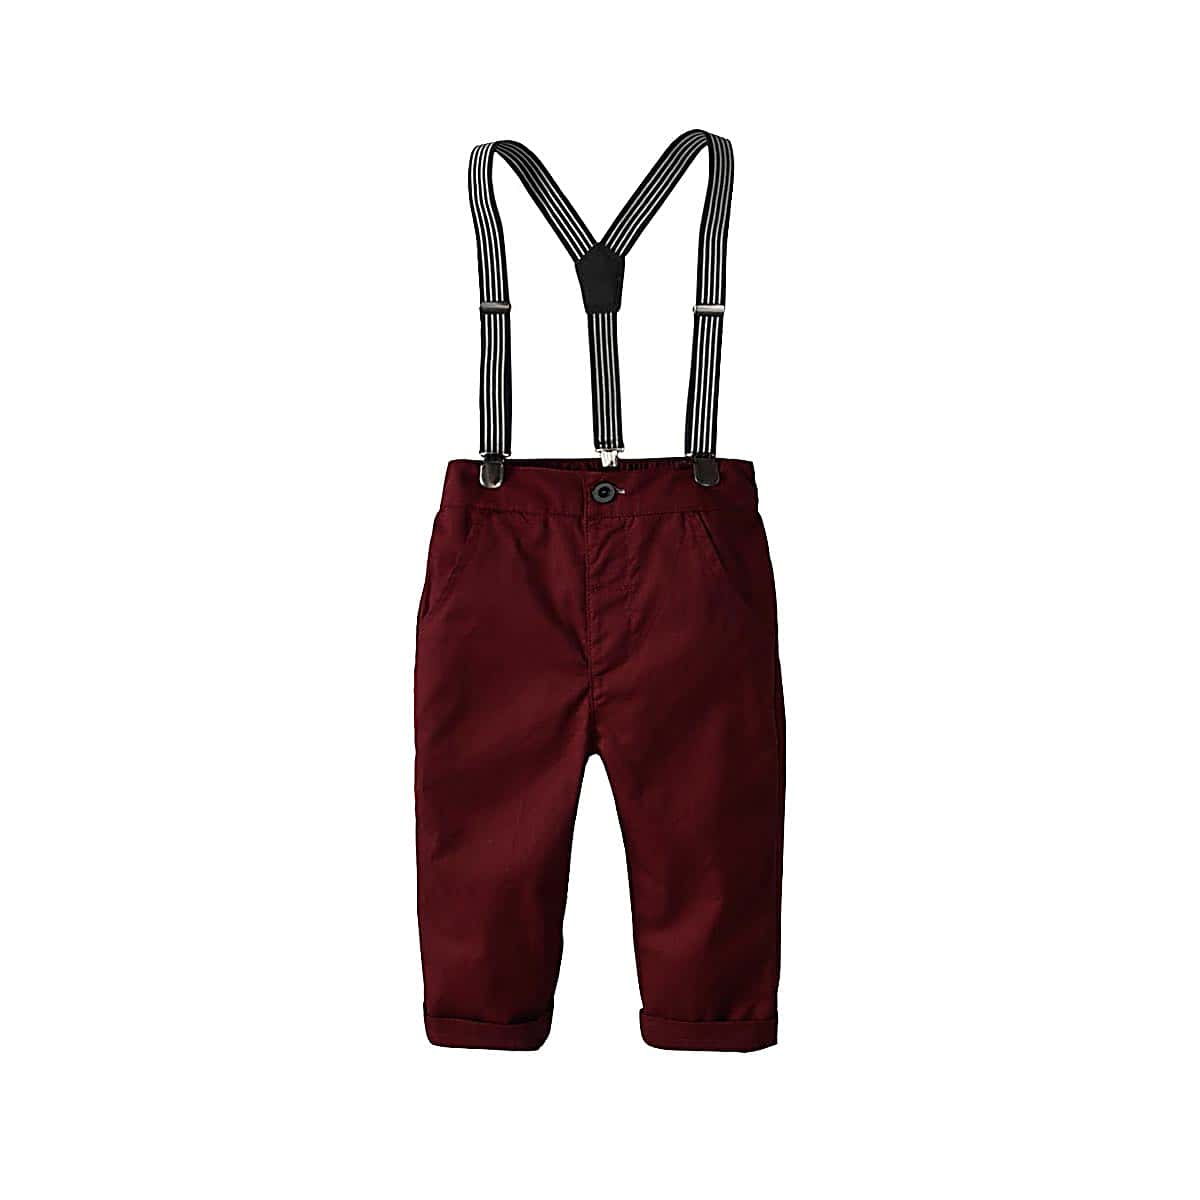 SHEIN coupon: Toddler Boys Solid Pants With Straps